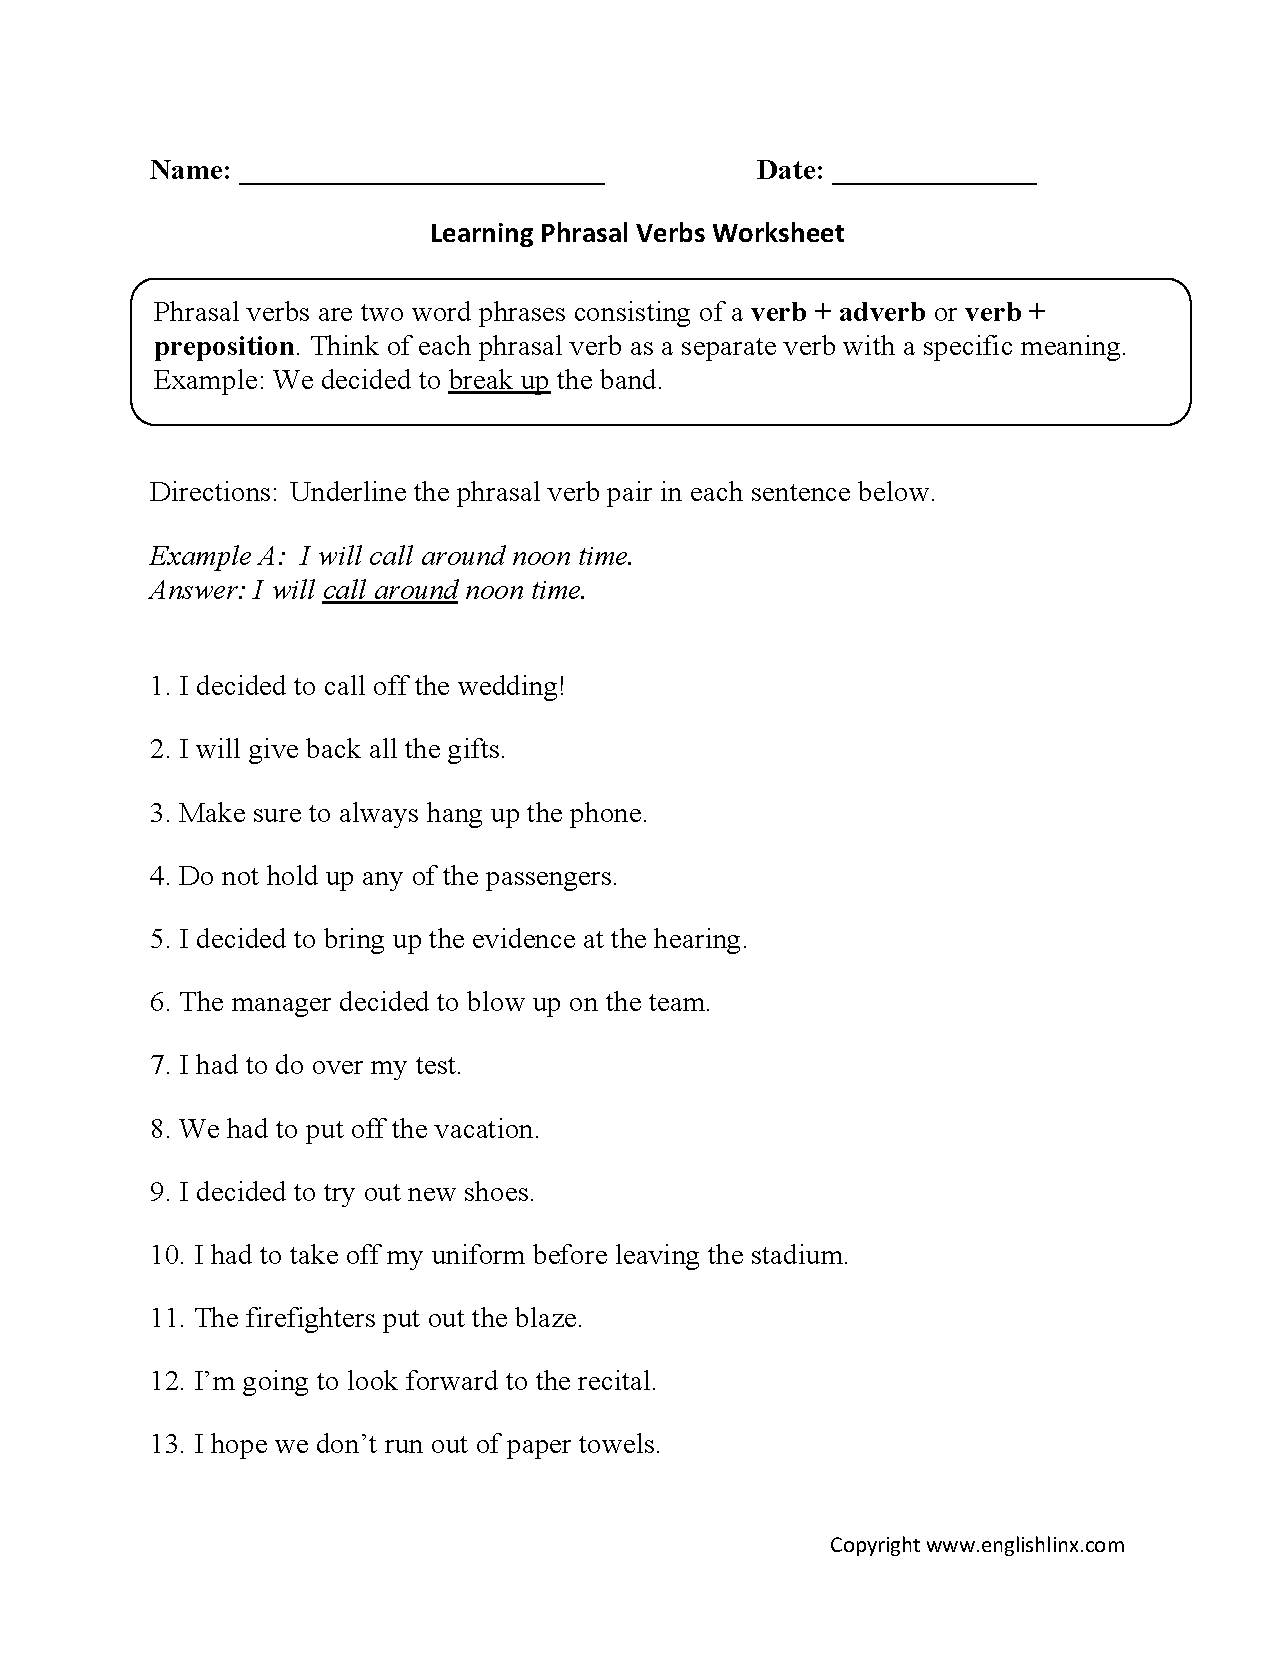 Englishlinx Com Verbs Worksheets Free Printable Science Worksheets Elementary Phrasal Verbs Worksheets